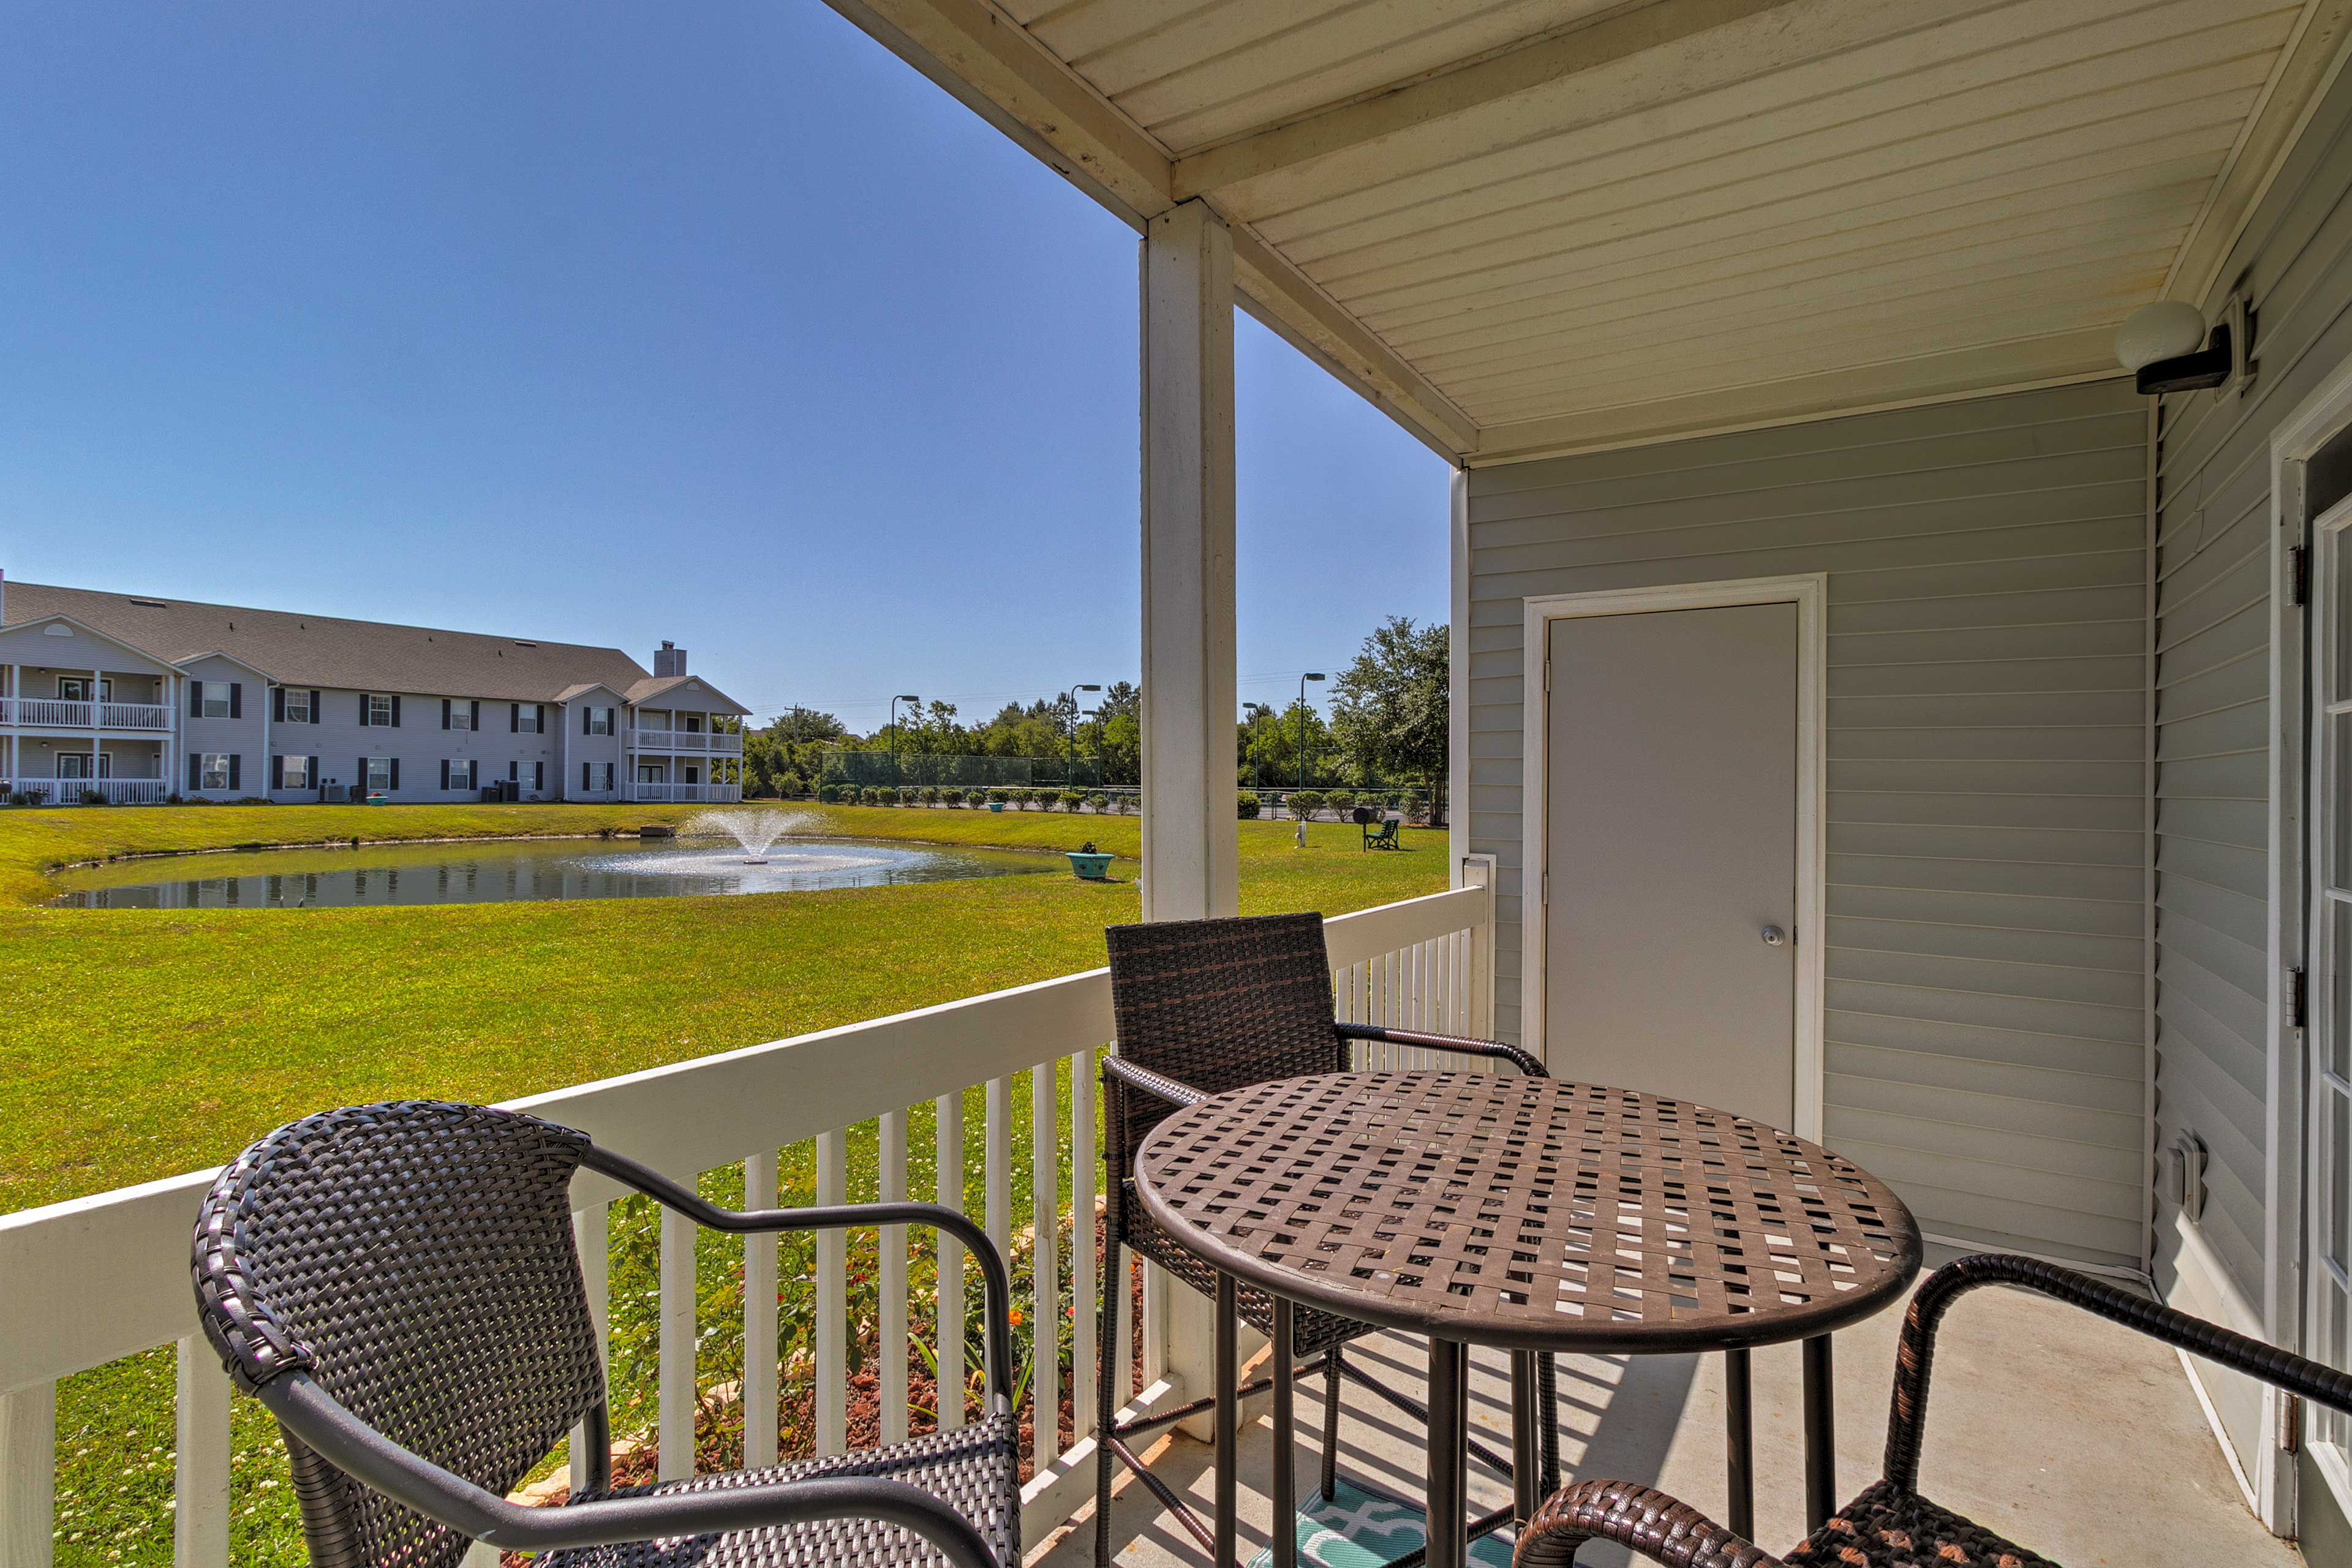 Relax on the private patio and enjoy the vibrant scenery!